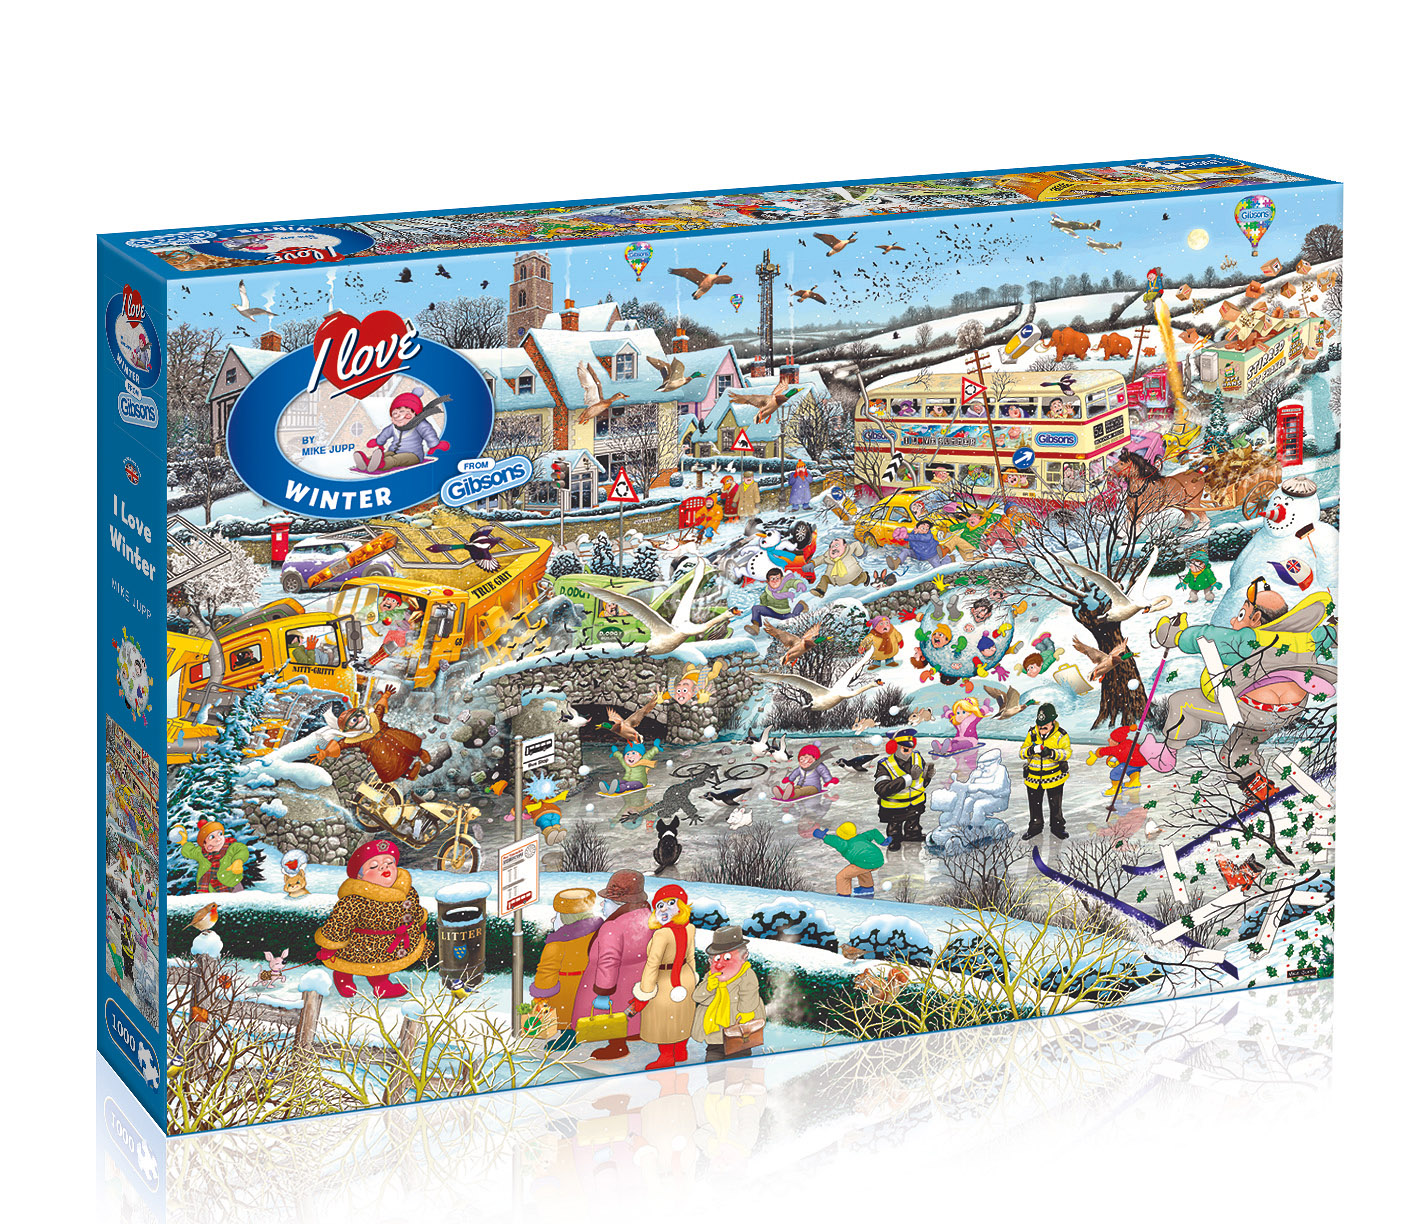 I Love The Weekend 1,000 Piece Jigsaw Gibsons Puzzle